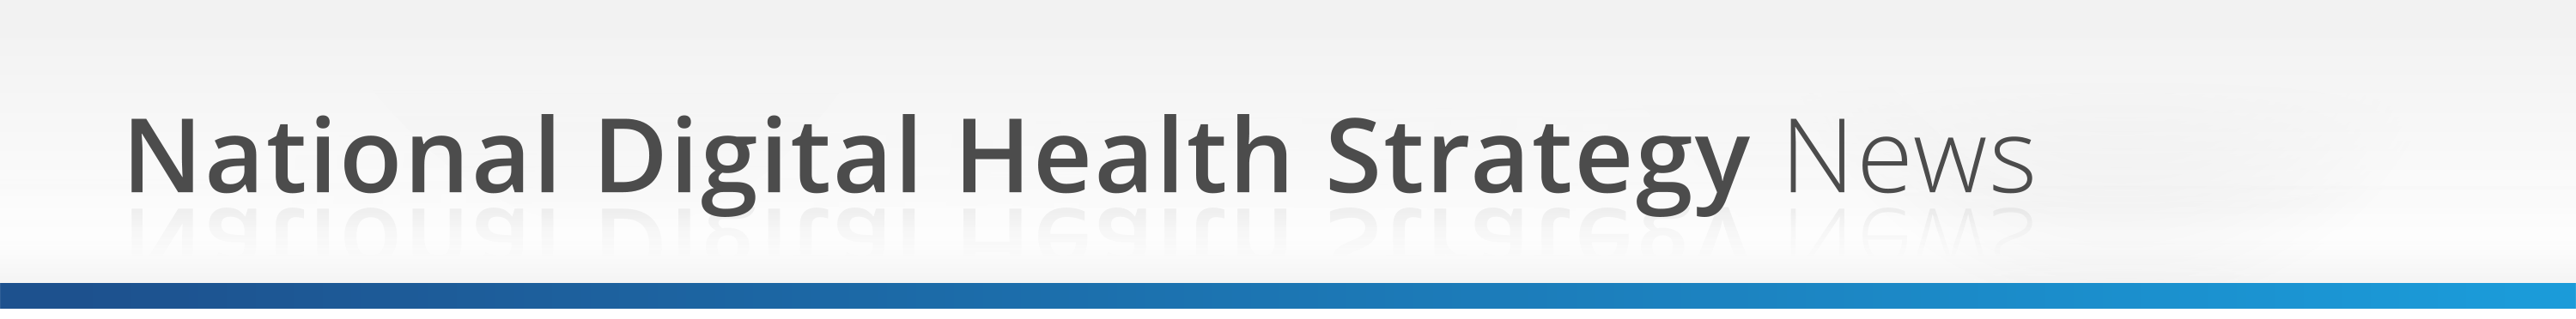 National Digital Health Strategy News